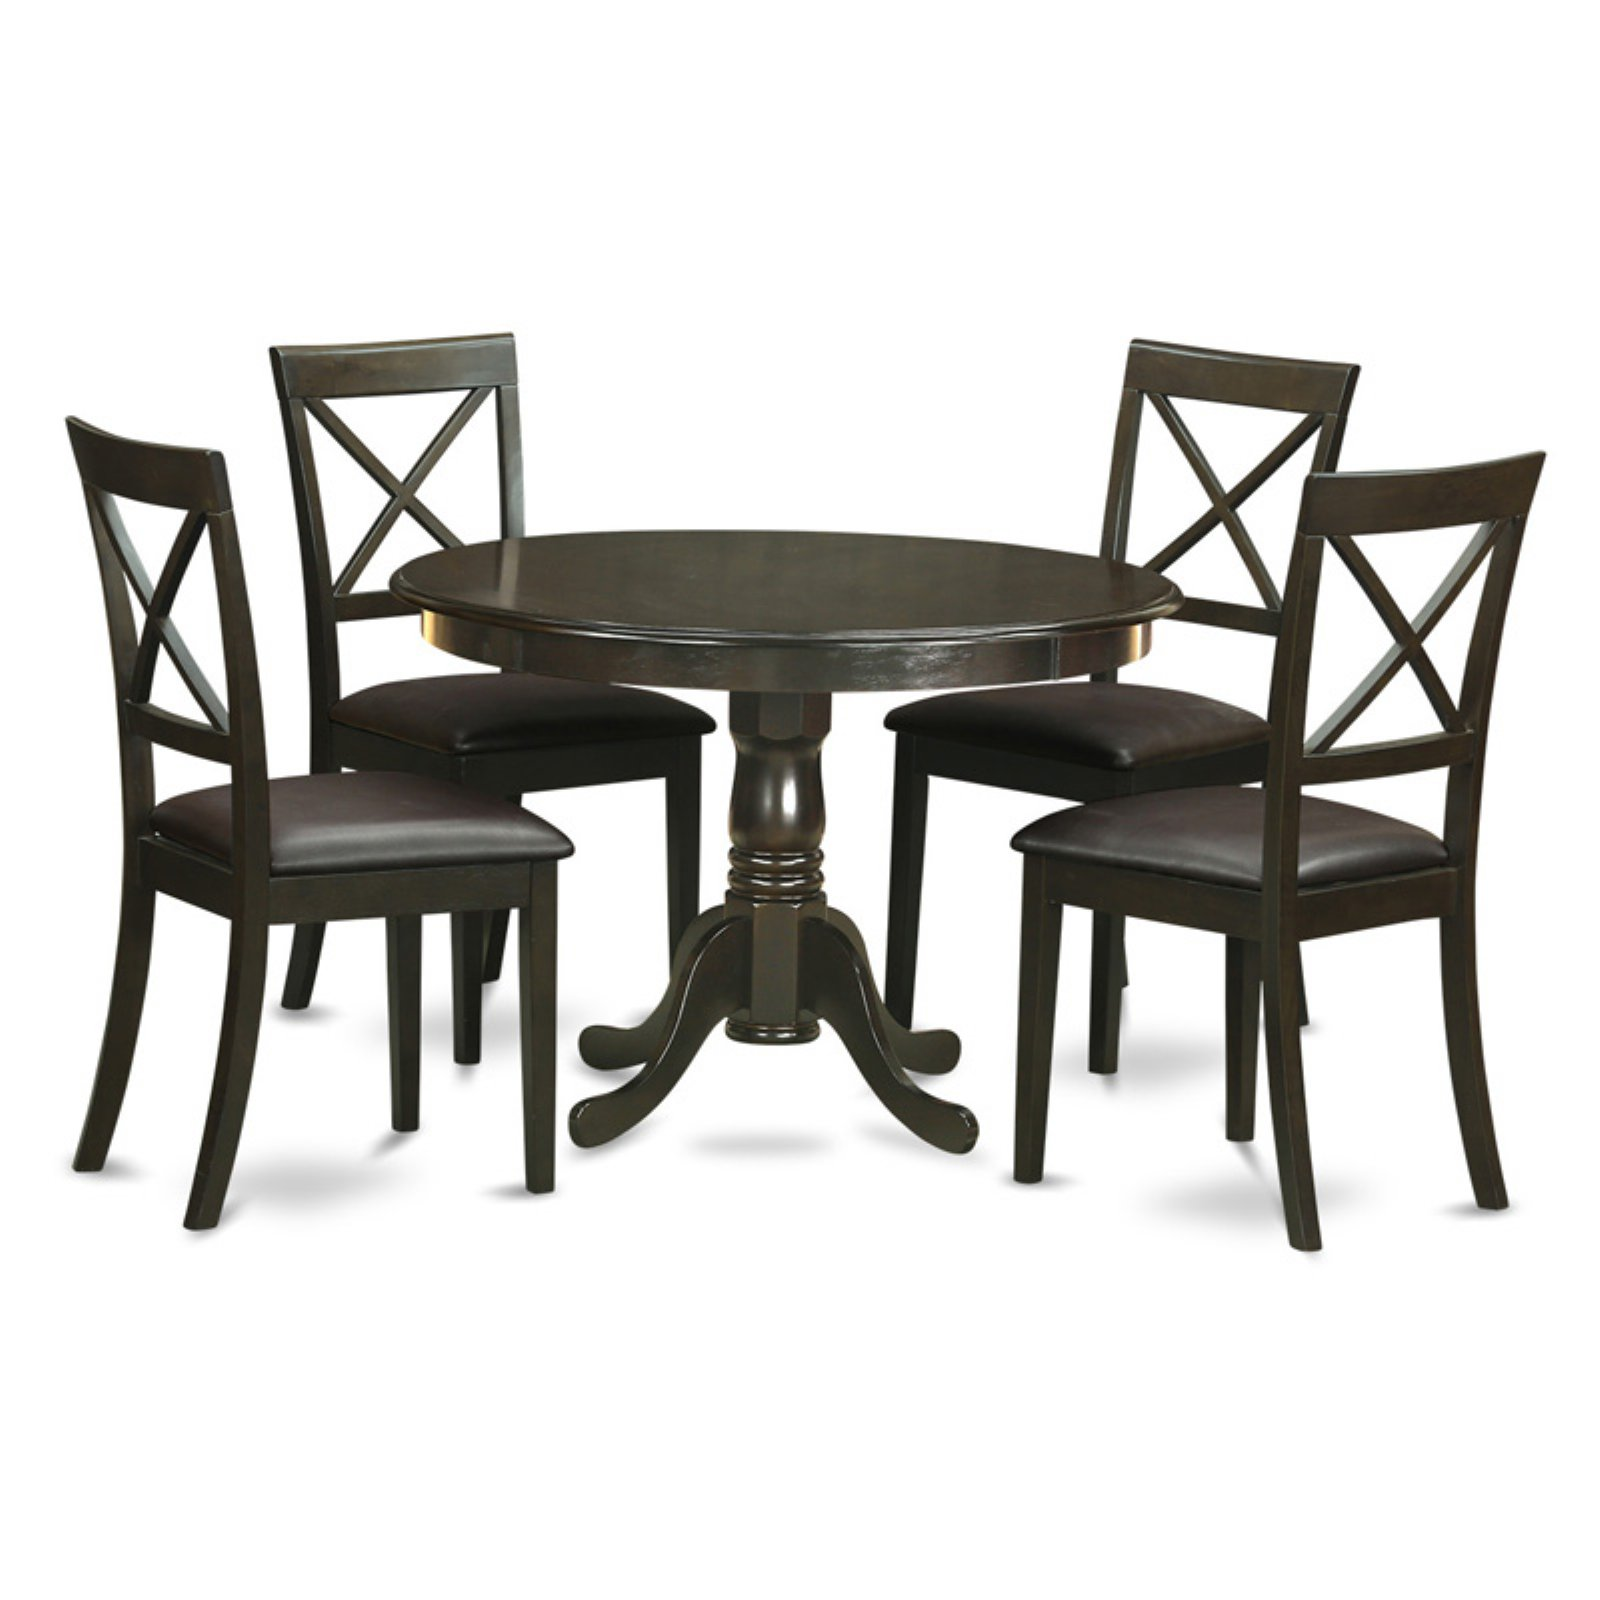 East West Furniture Hartland 5 Piece Round Pedestal Dining Table Set with Boston Chairs